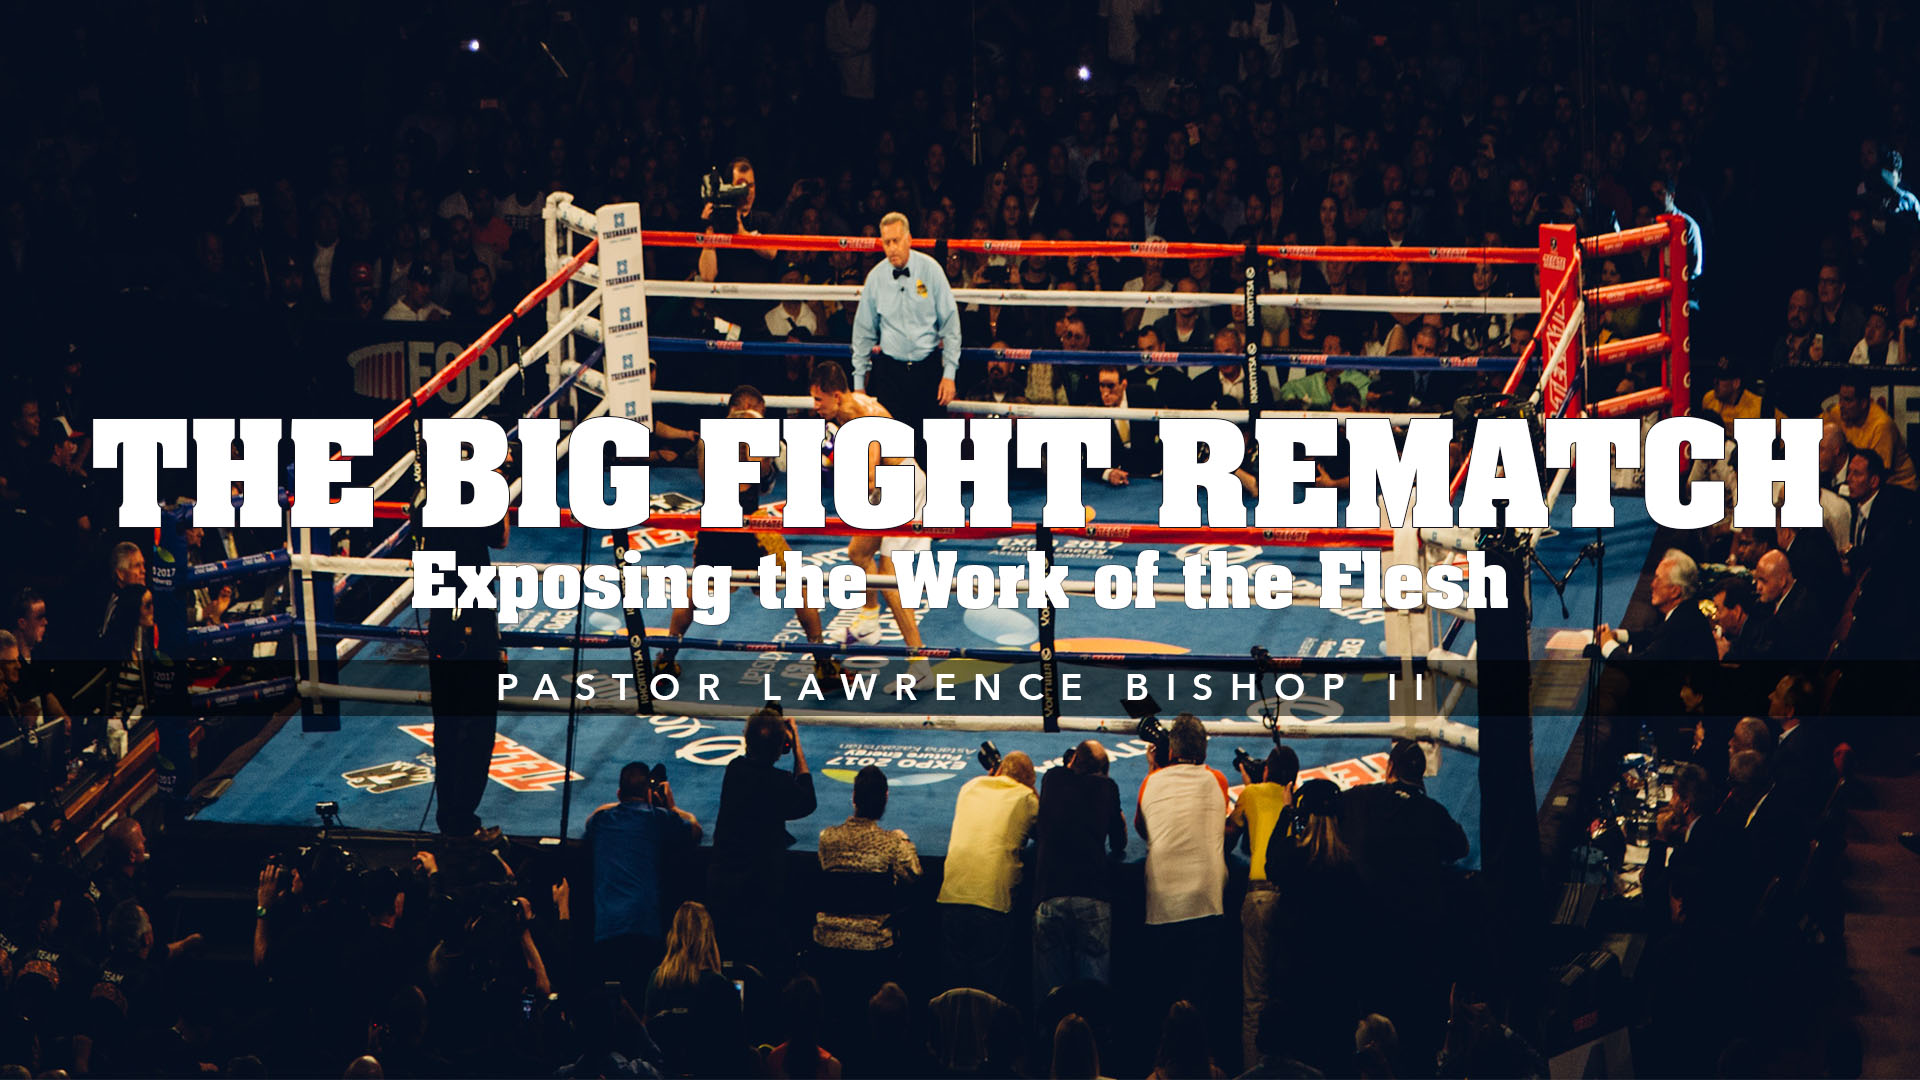 SRC 12-19-18 LB2 The Big Fight Rematch- Exposing the Works of the Flesh